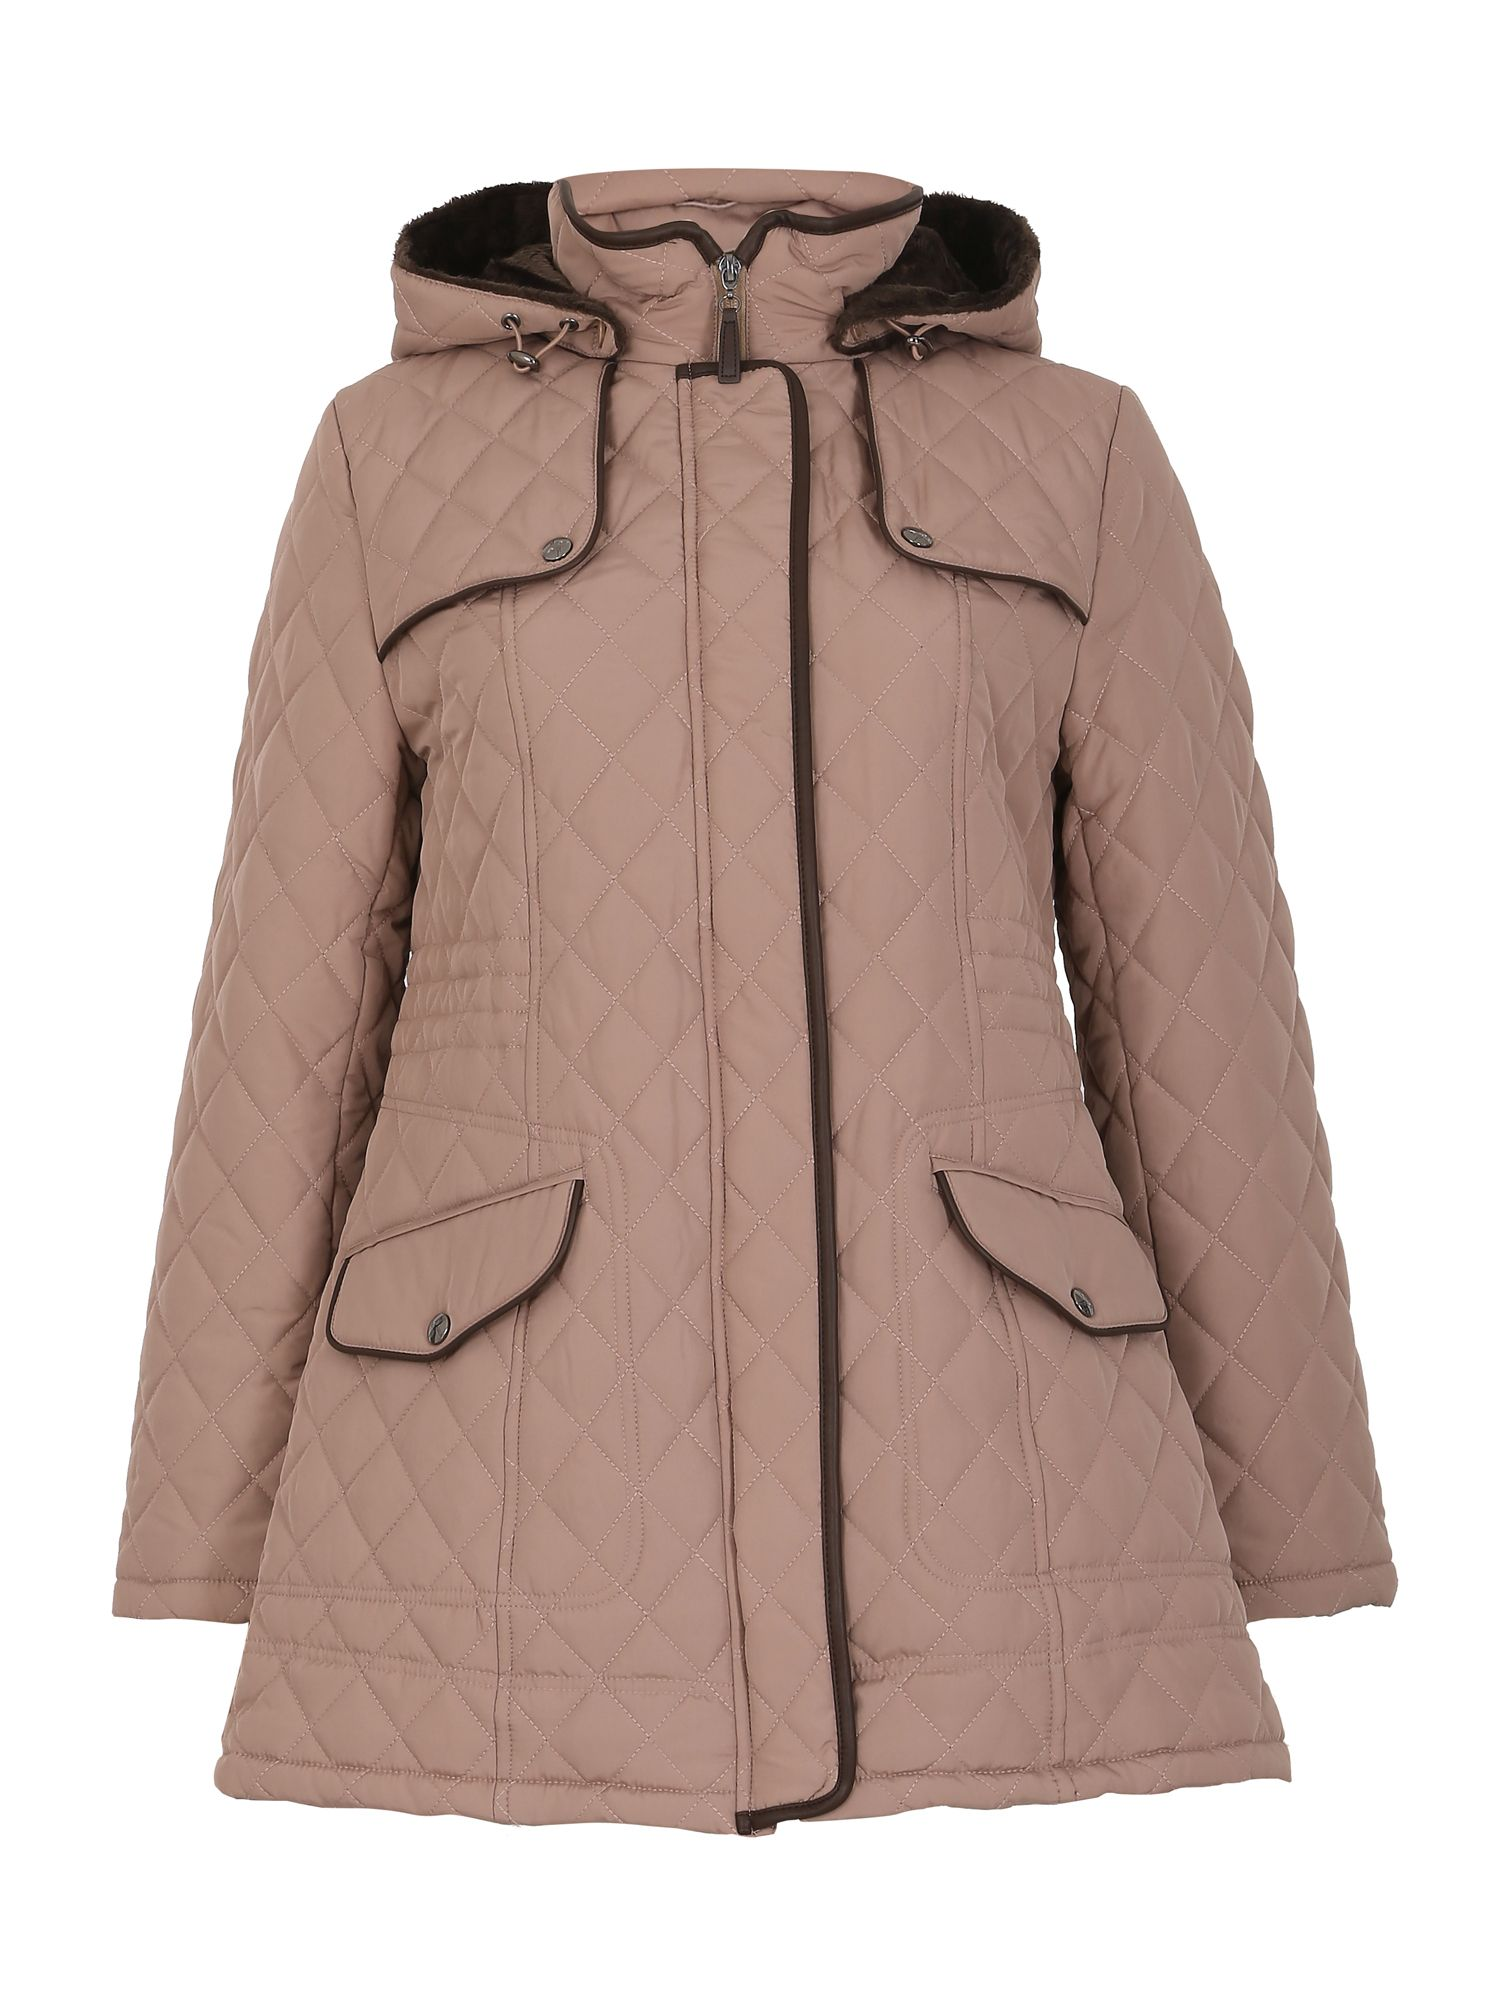 David Barry David Barry Luxury Detachable Hooded Jacket, Beige